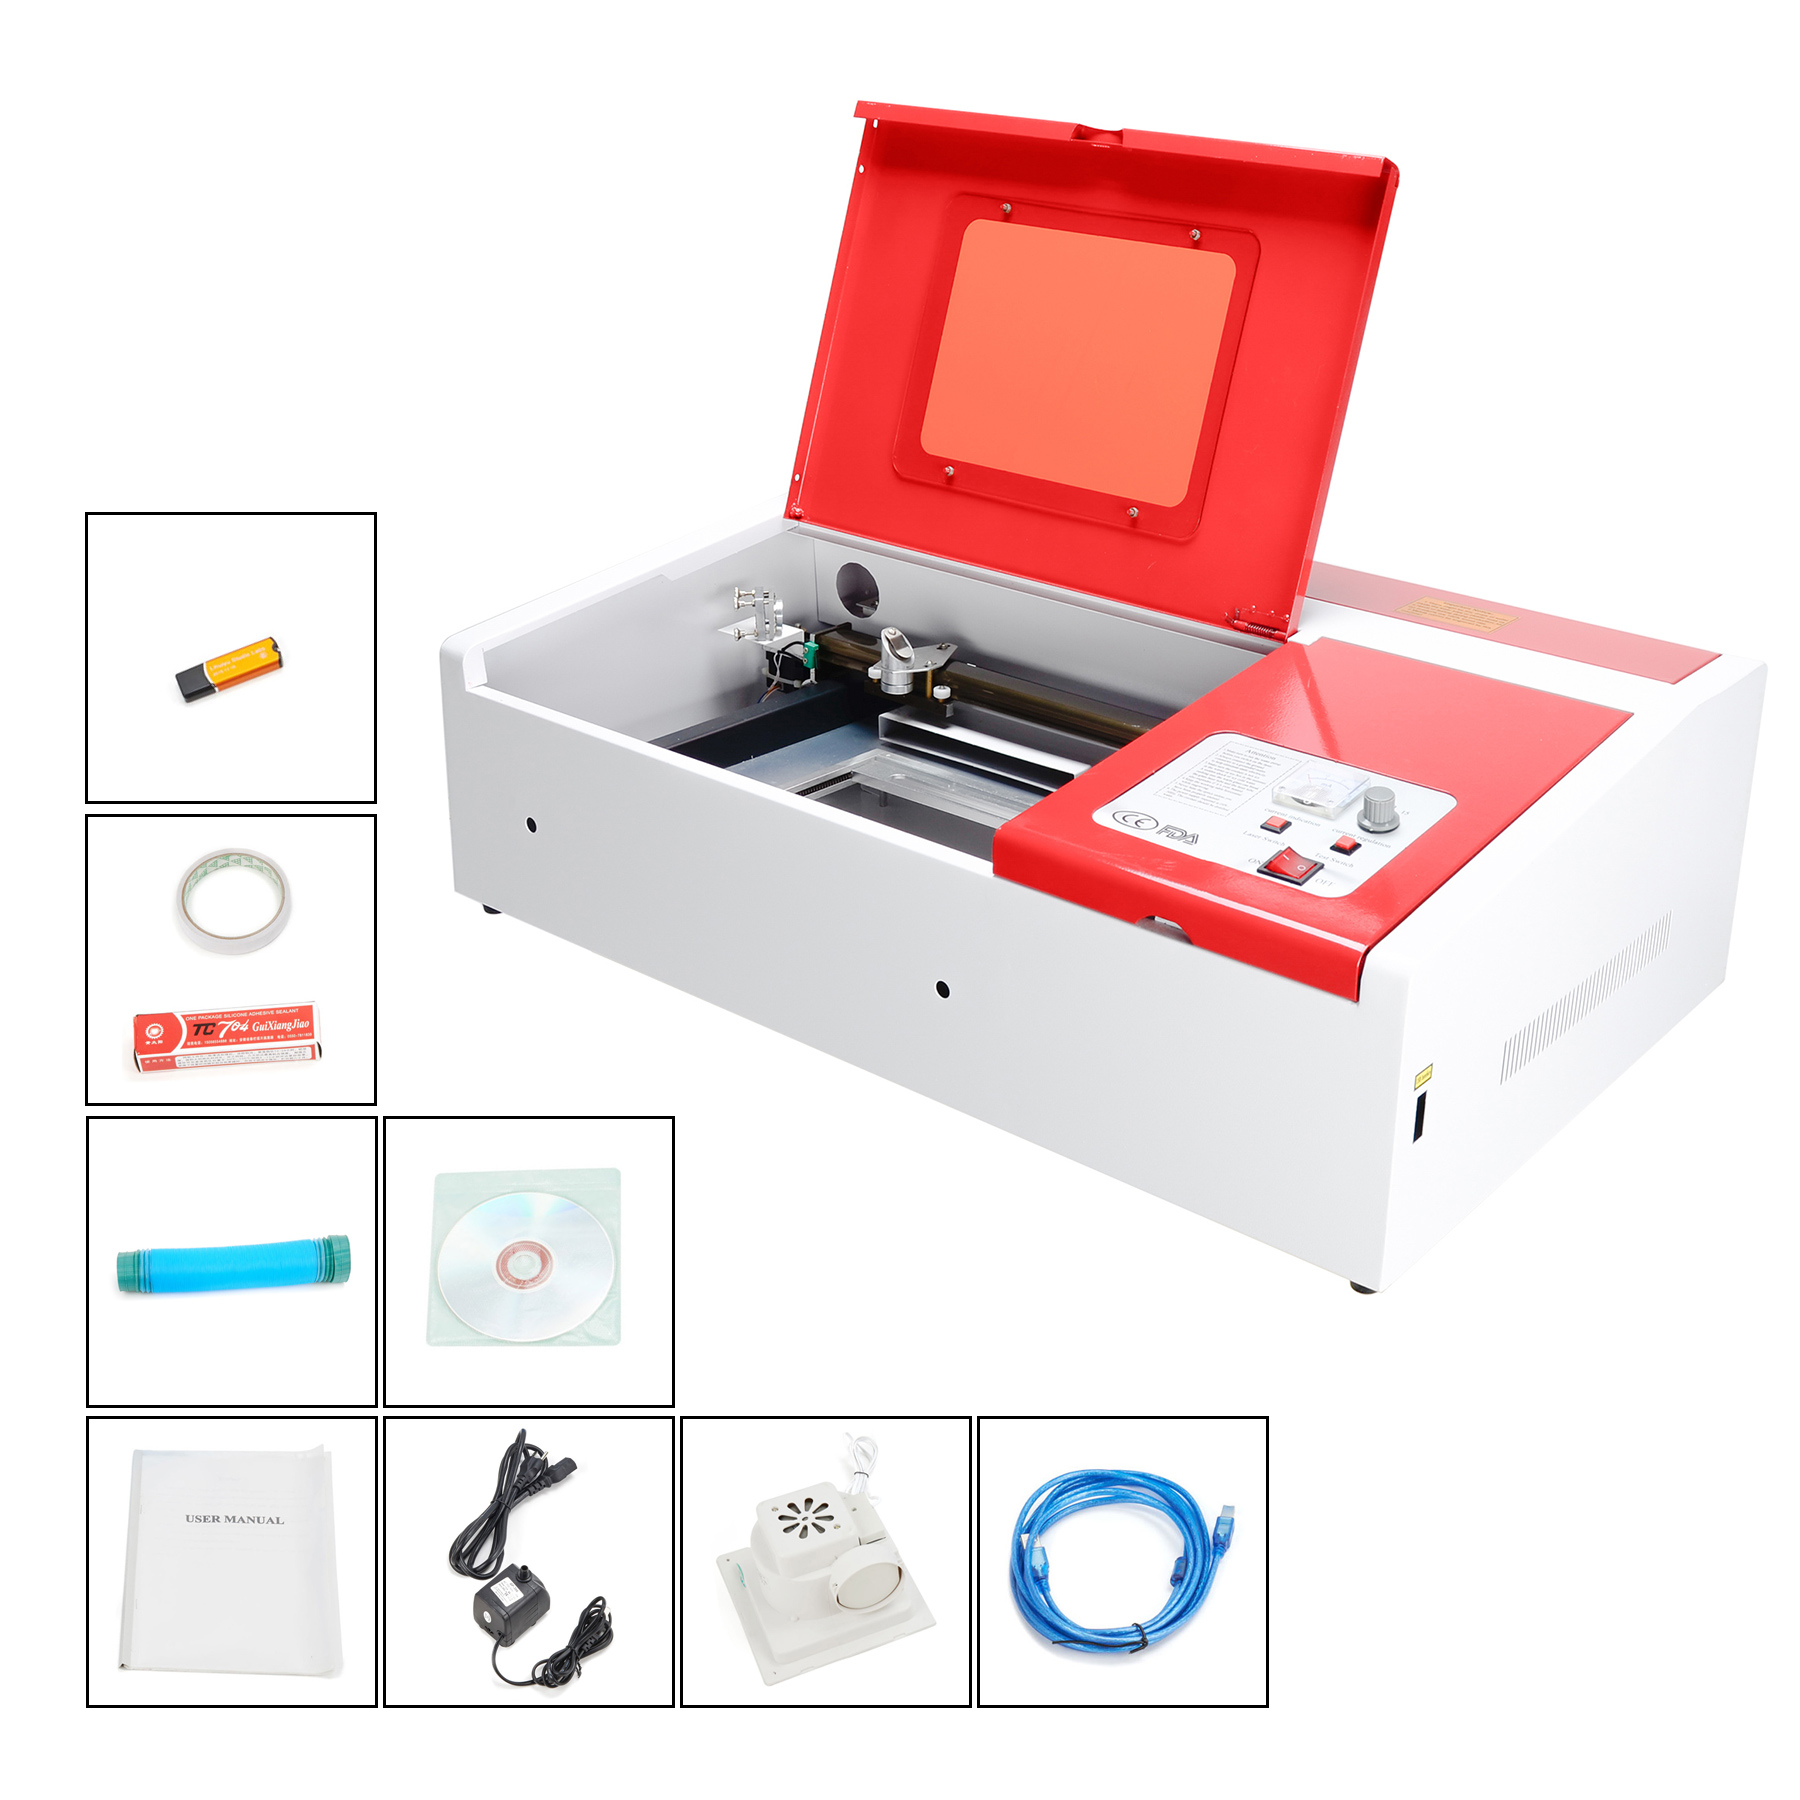 Pro-Tech 40W CO2 Laser Engraving Cutting Machine Engraver Cutter